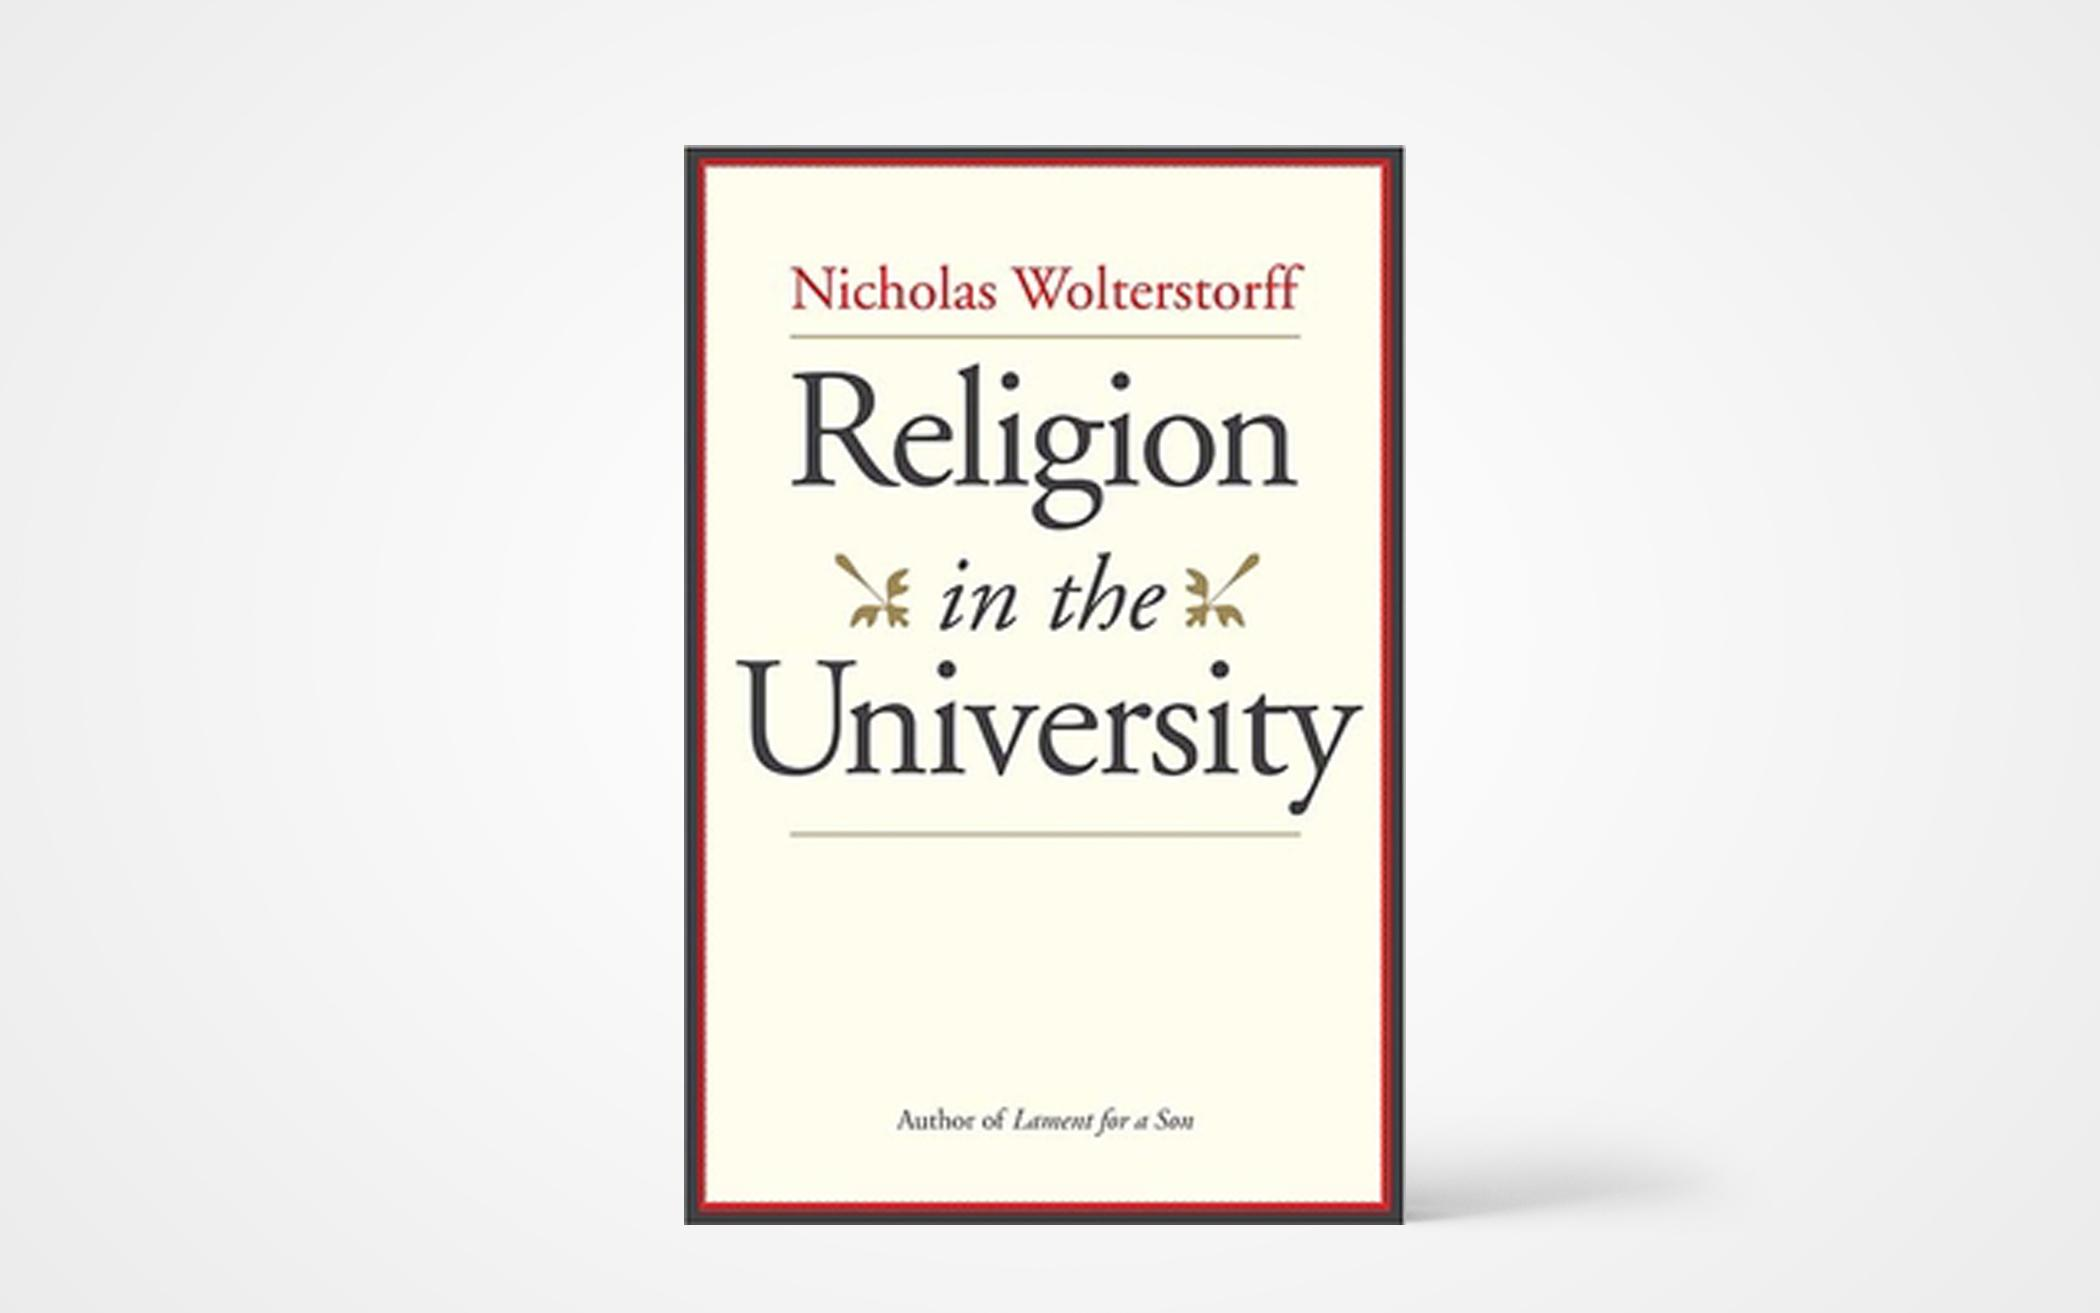 Religion in the University